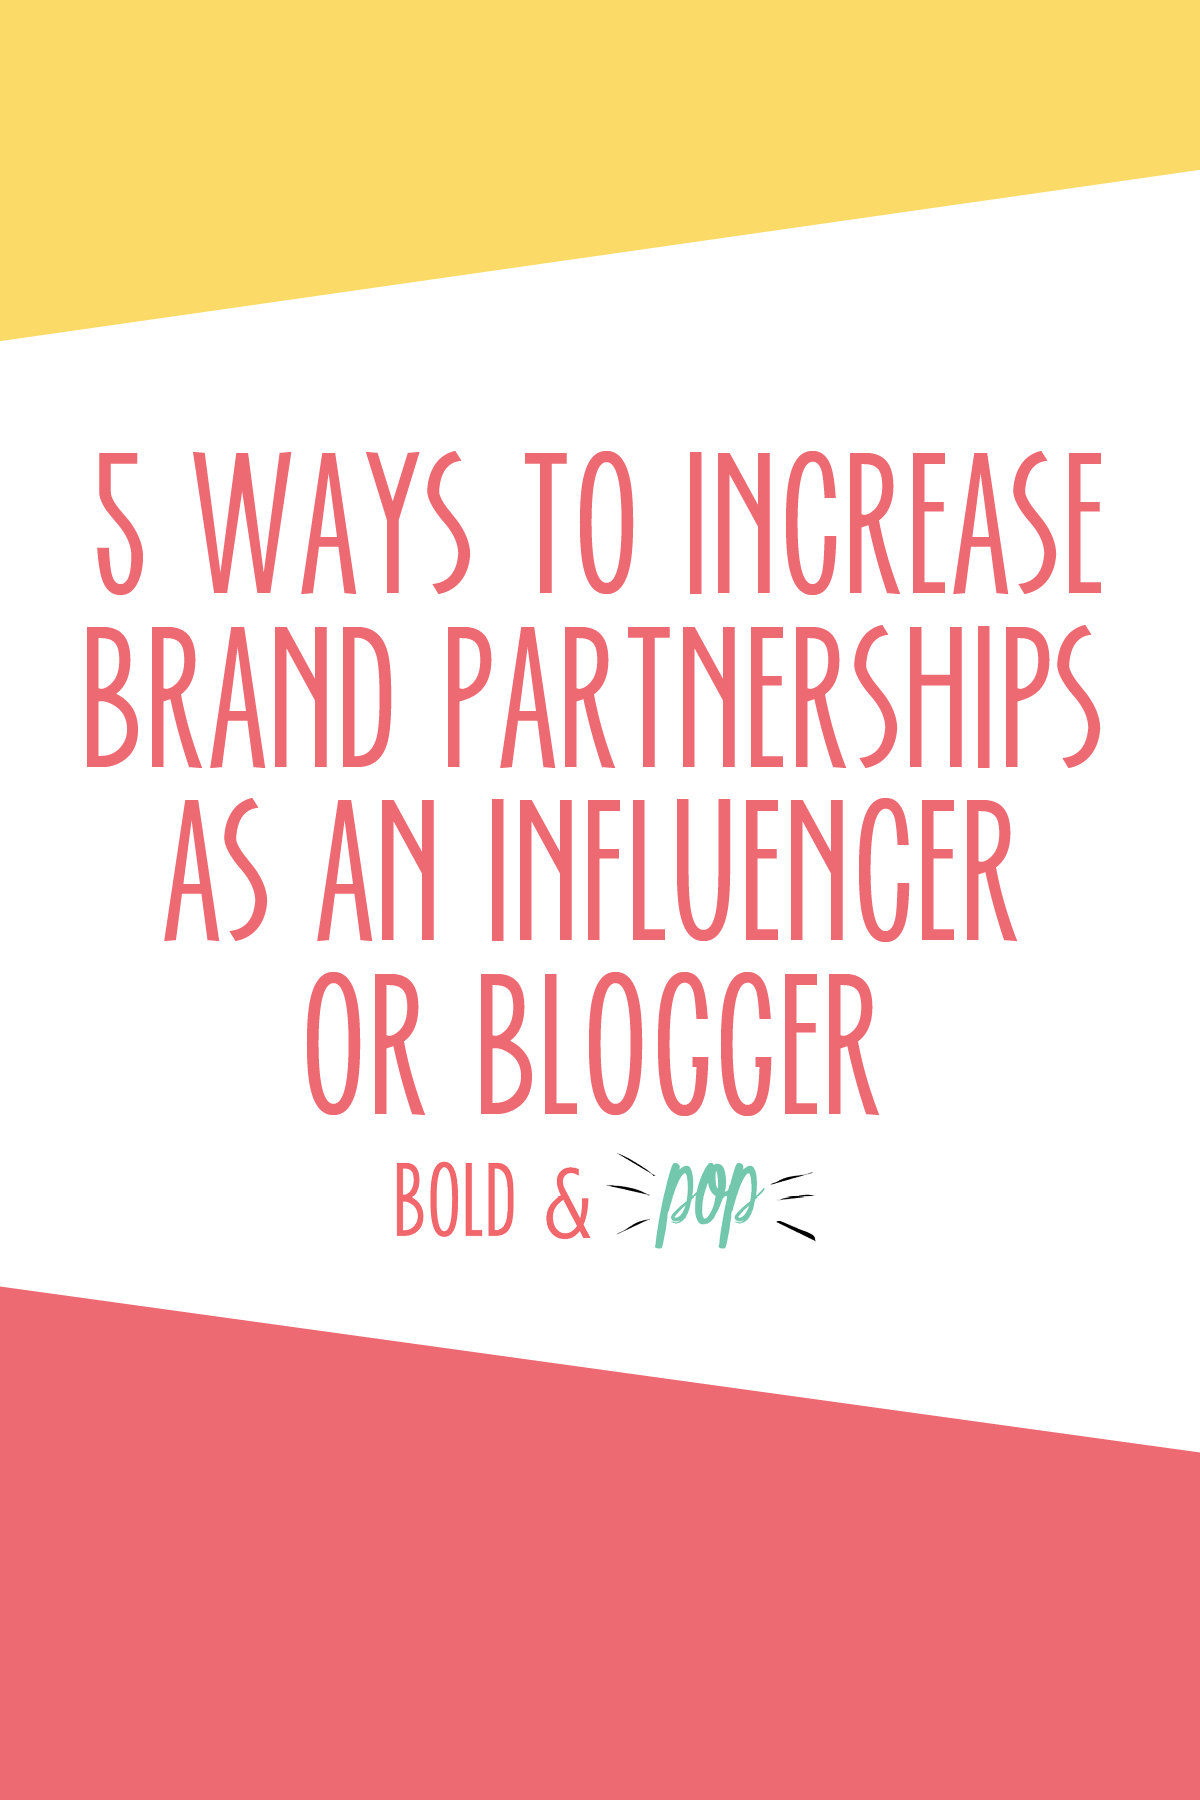 Bold & Pop : 5 Ways to Increase Brand Partnerships as an Influencer or Blogger